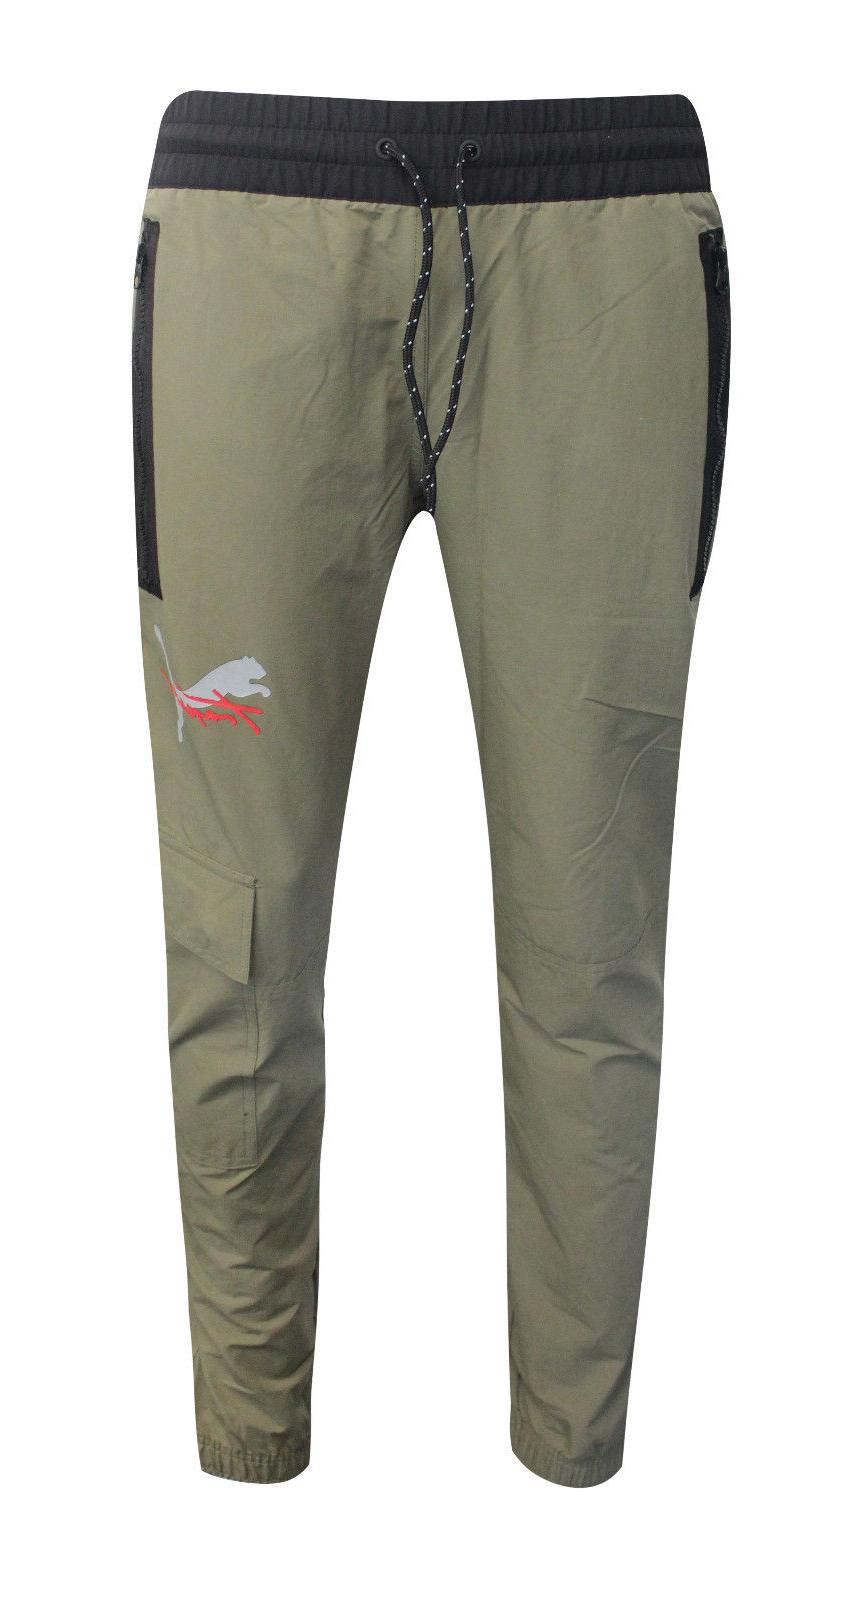 x trapstar cargo mens pants bottoms casual